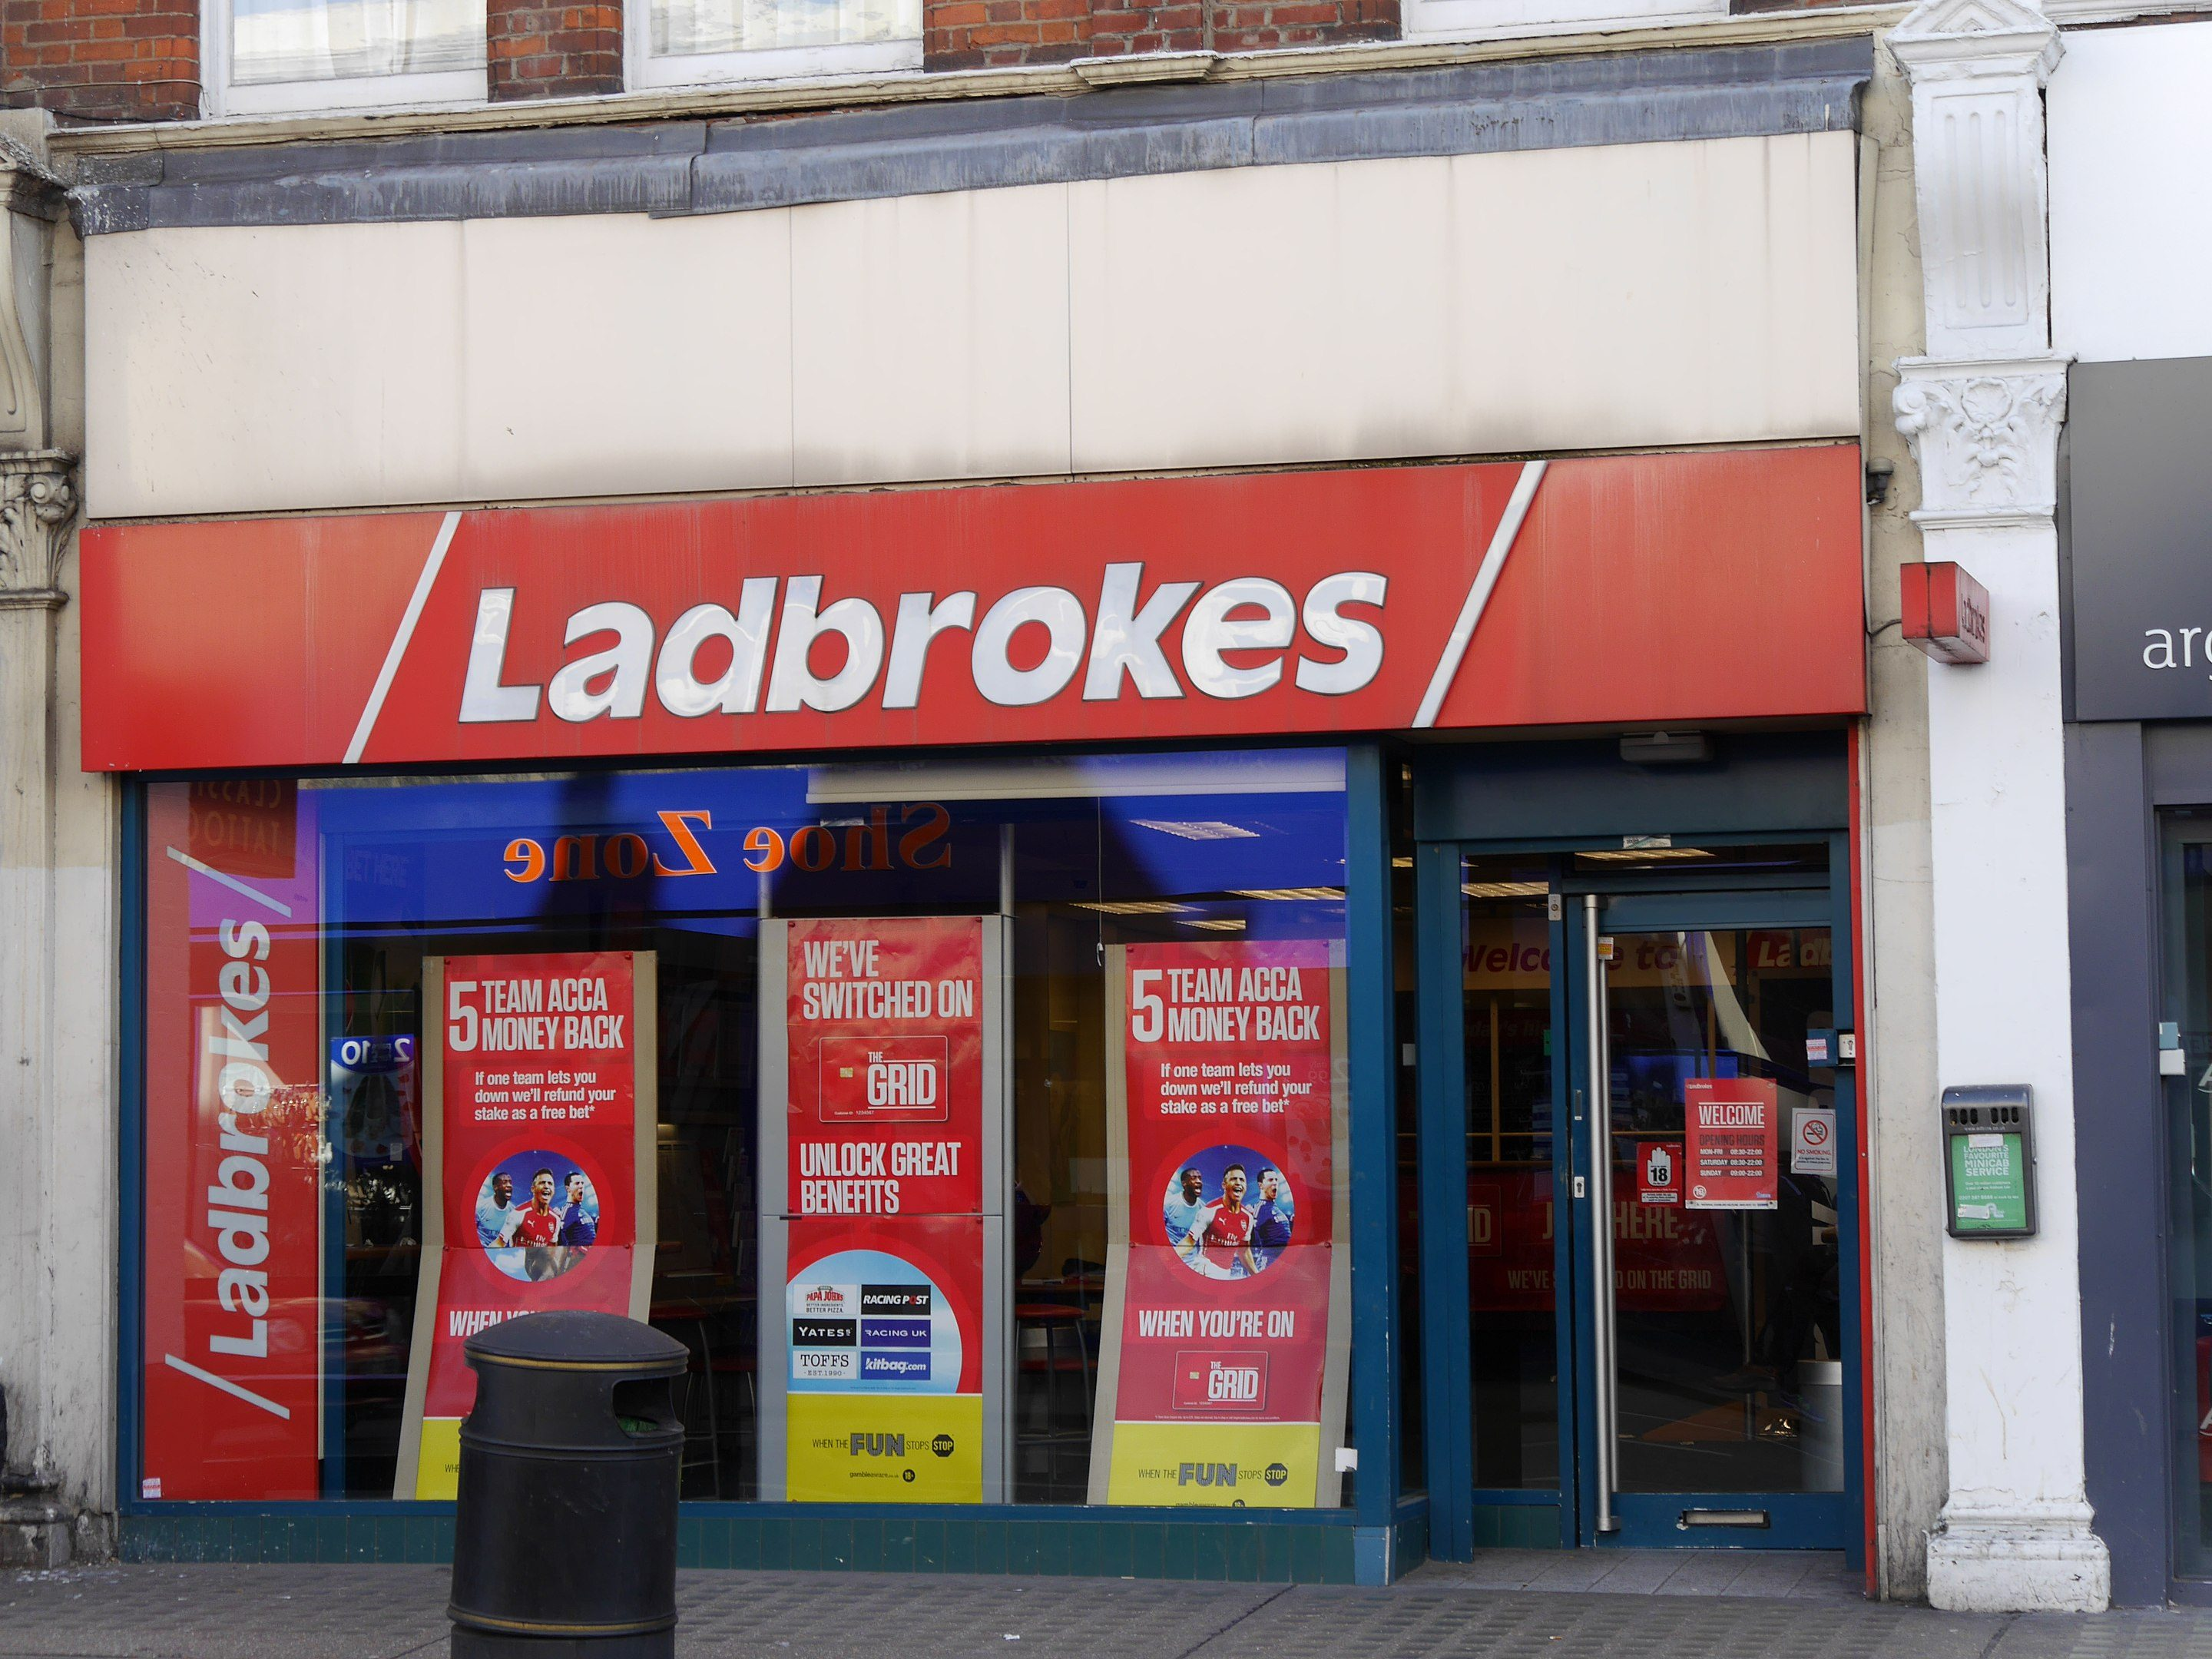 Ladbrokes Wettbüro Ladbrokes, North End Road, London